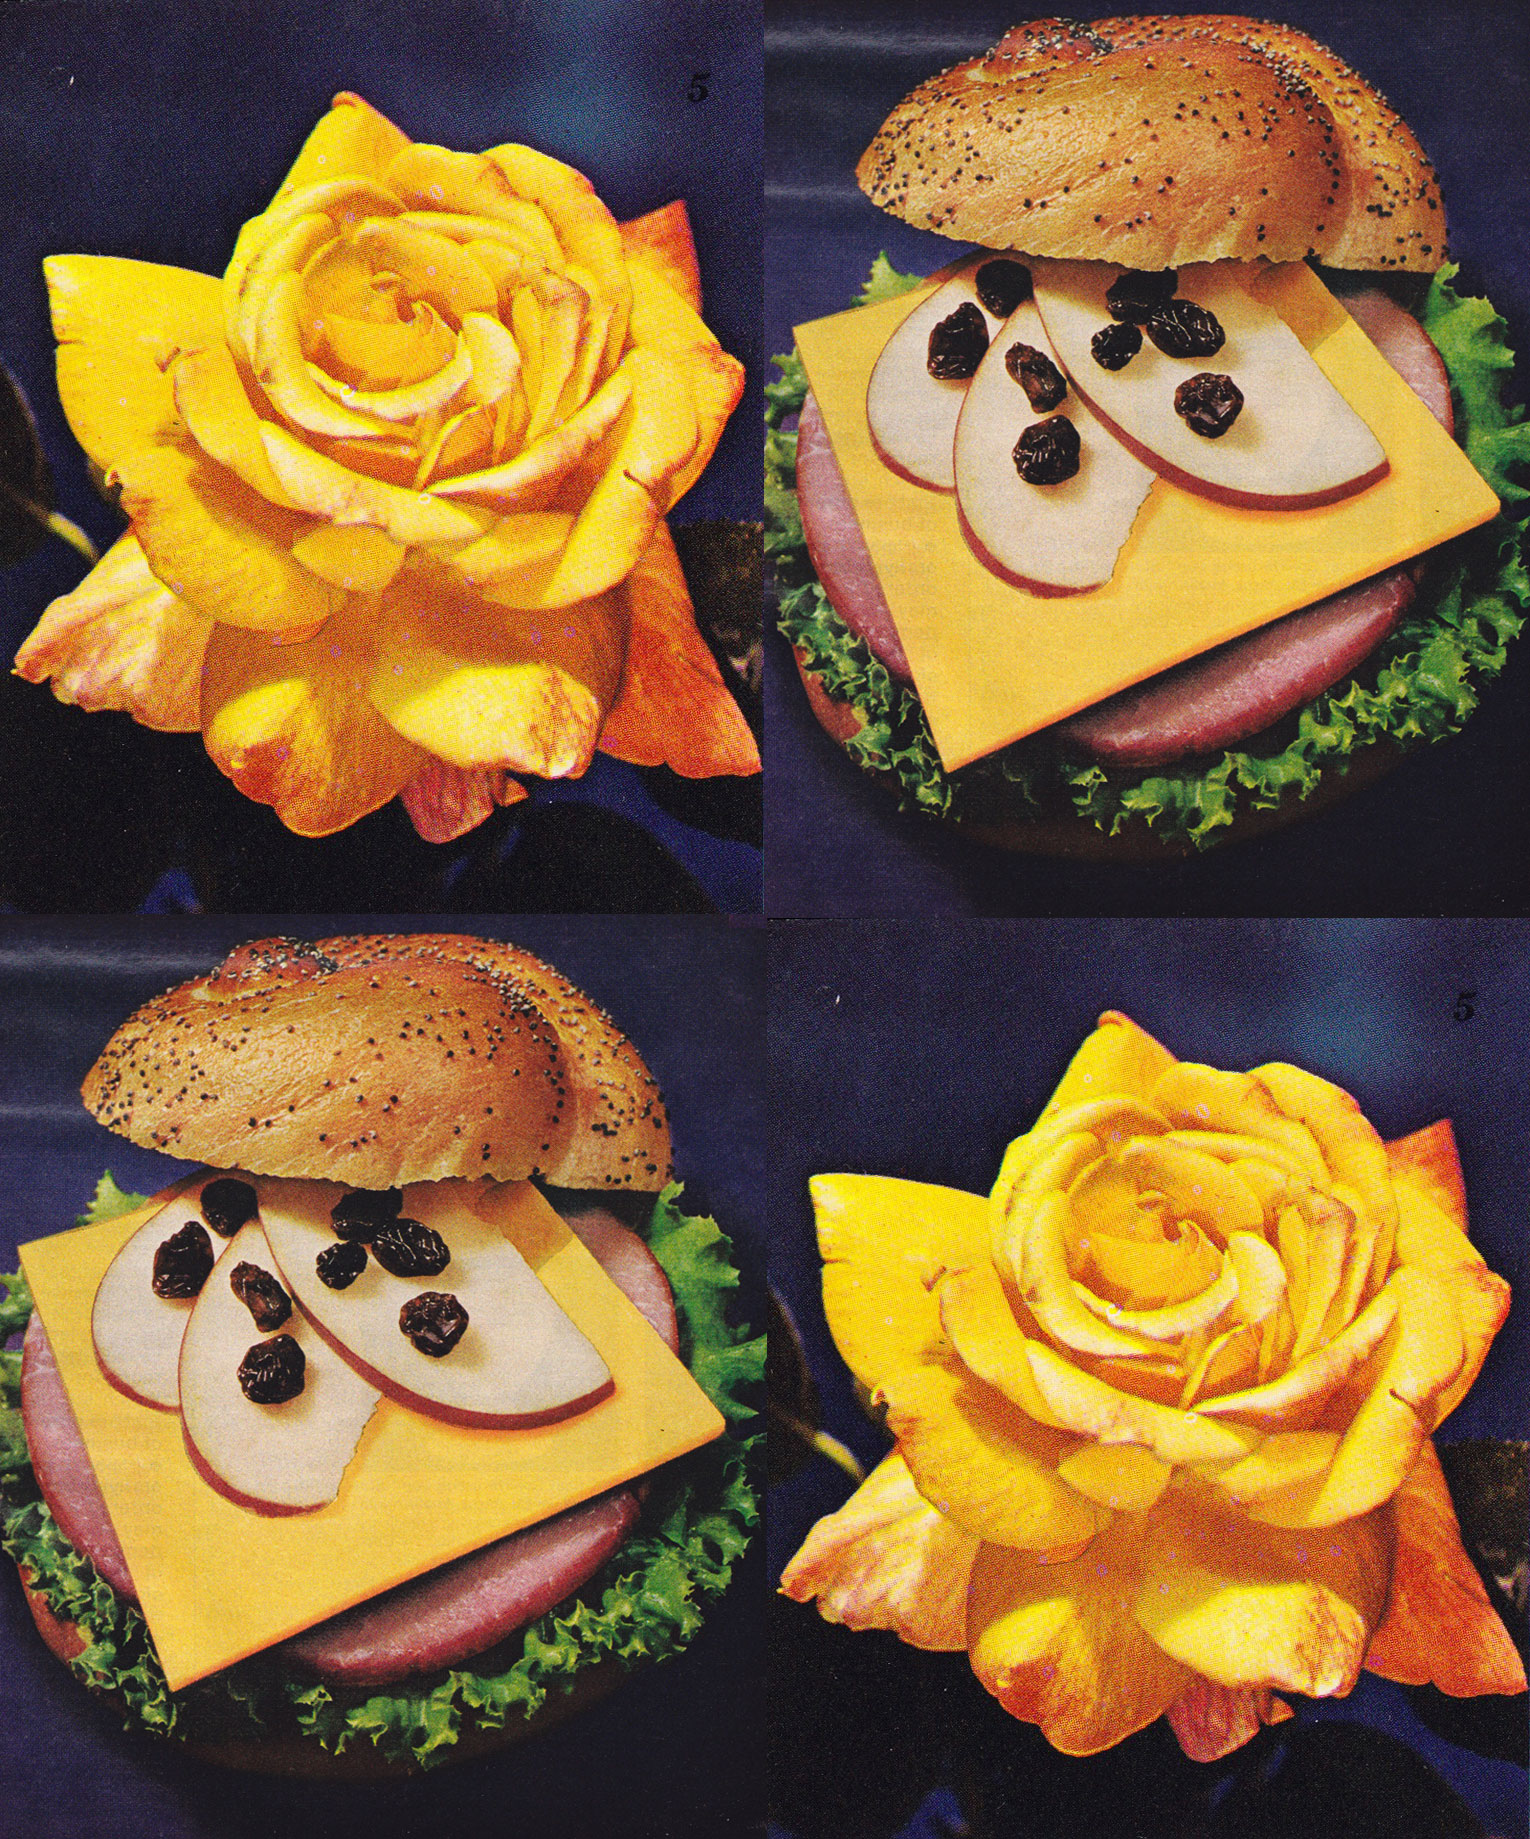 ham-cheese-rose-yellow